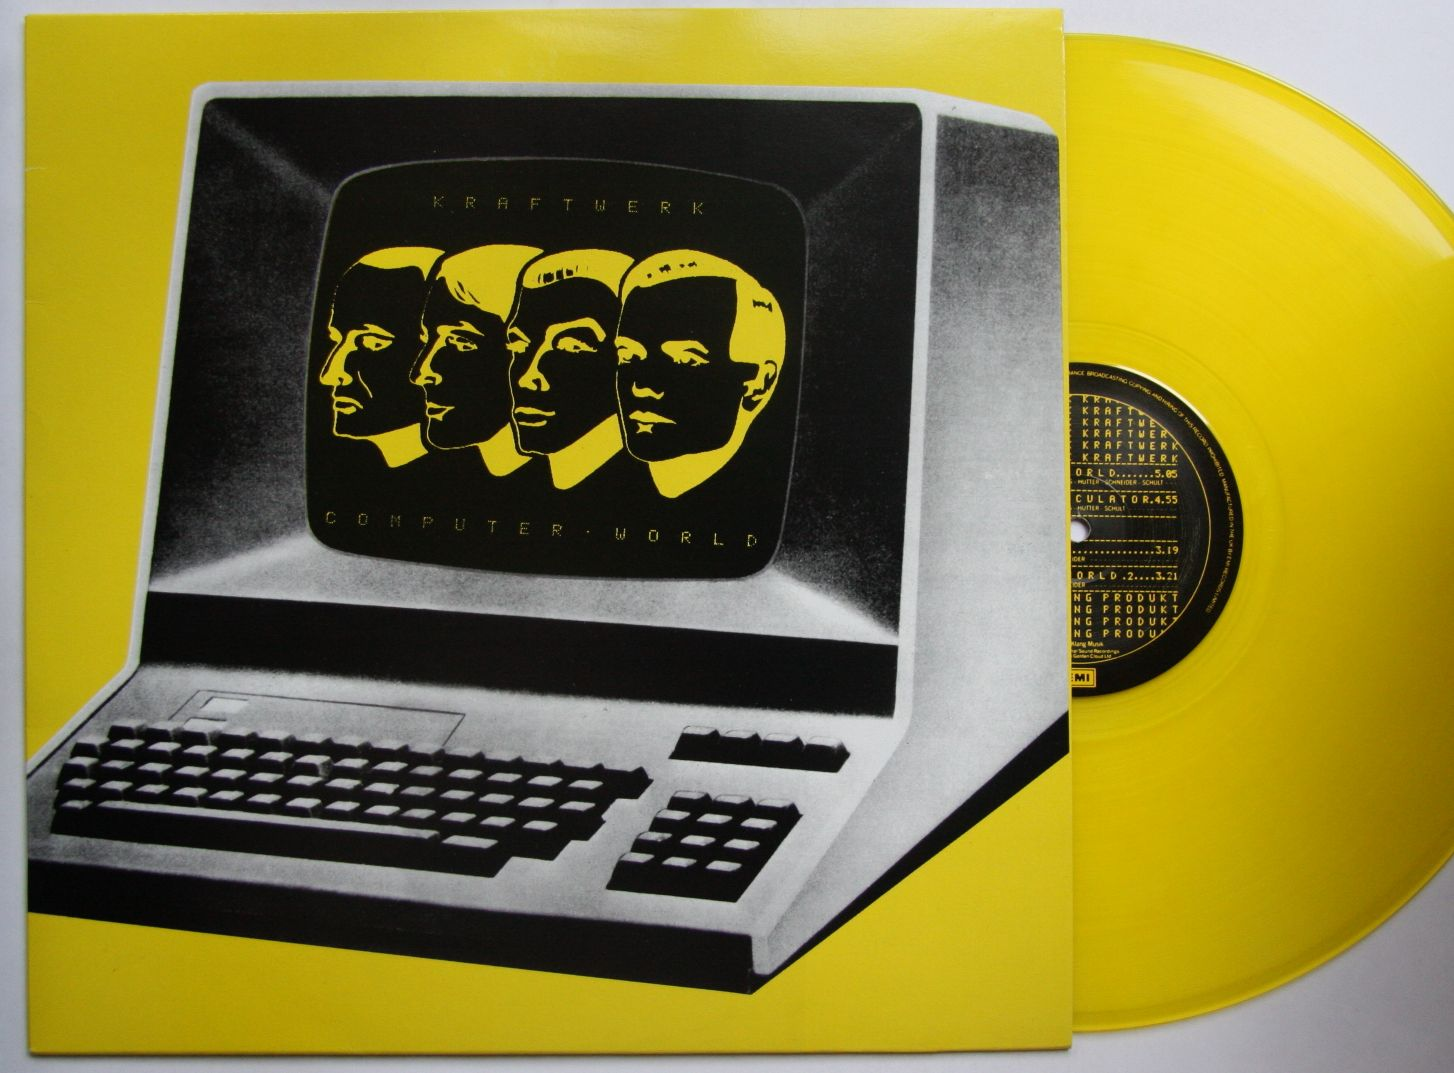 Kraftwerk - Computer World Record